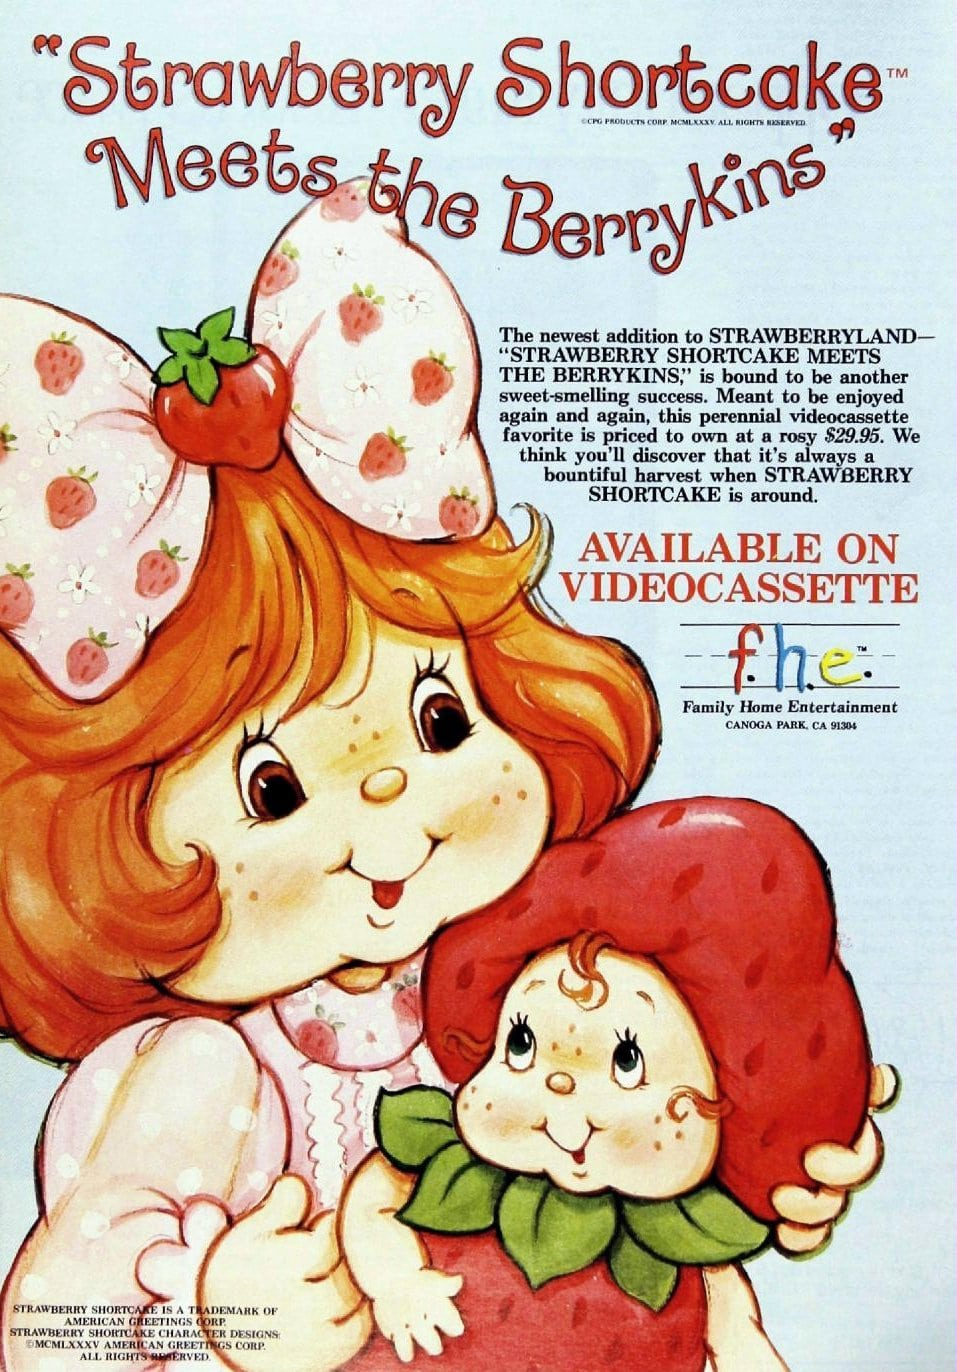 1985 Strawberry Shortcake Meets the Berrykins VHS tape